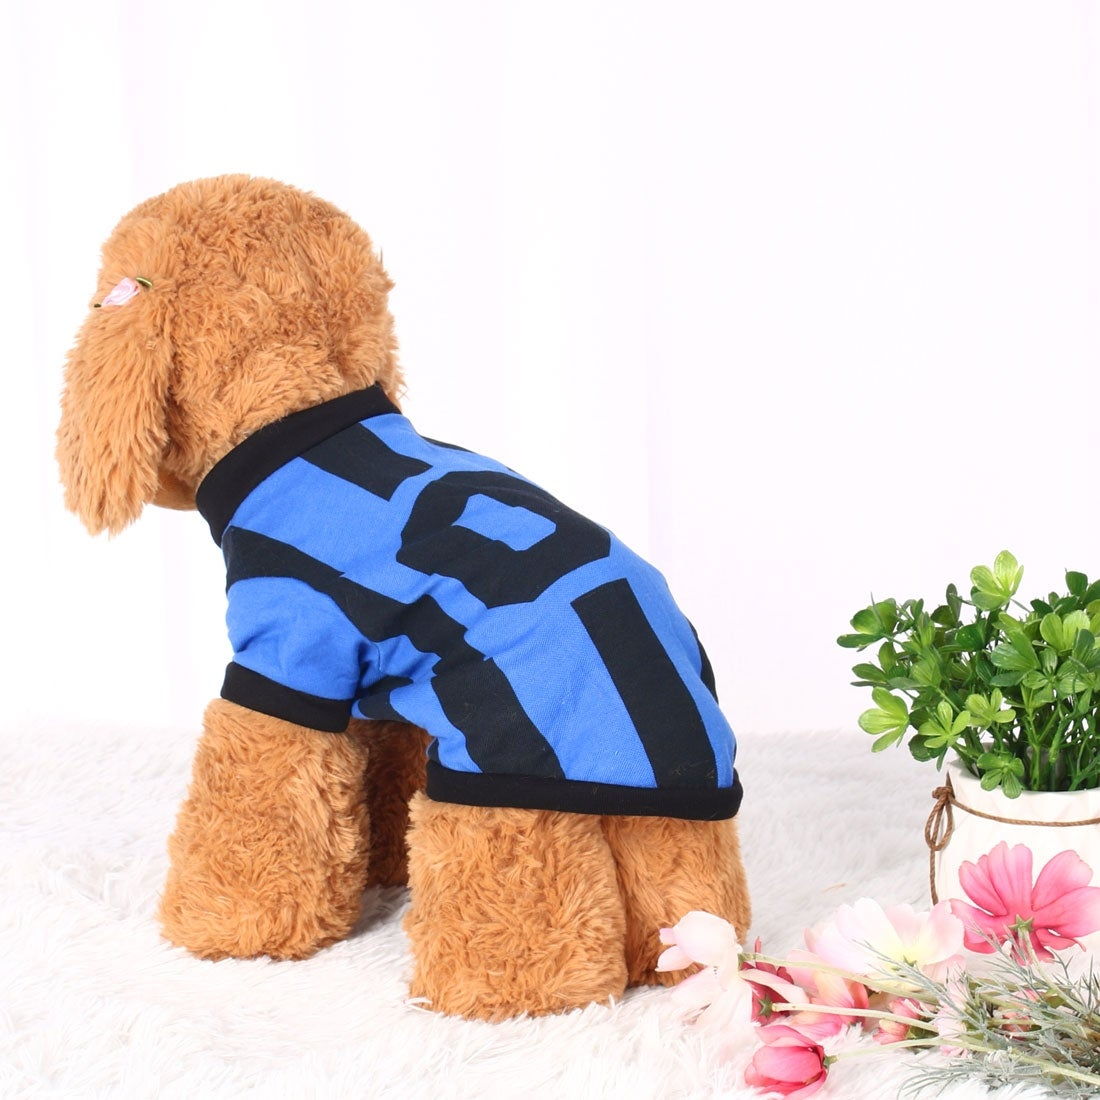 Dog T Shirt Puppy Small Pet Cat Sweatshirt Tops Casual Apparel Vest Costume (Blue - XS)